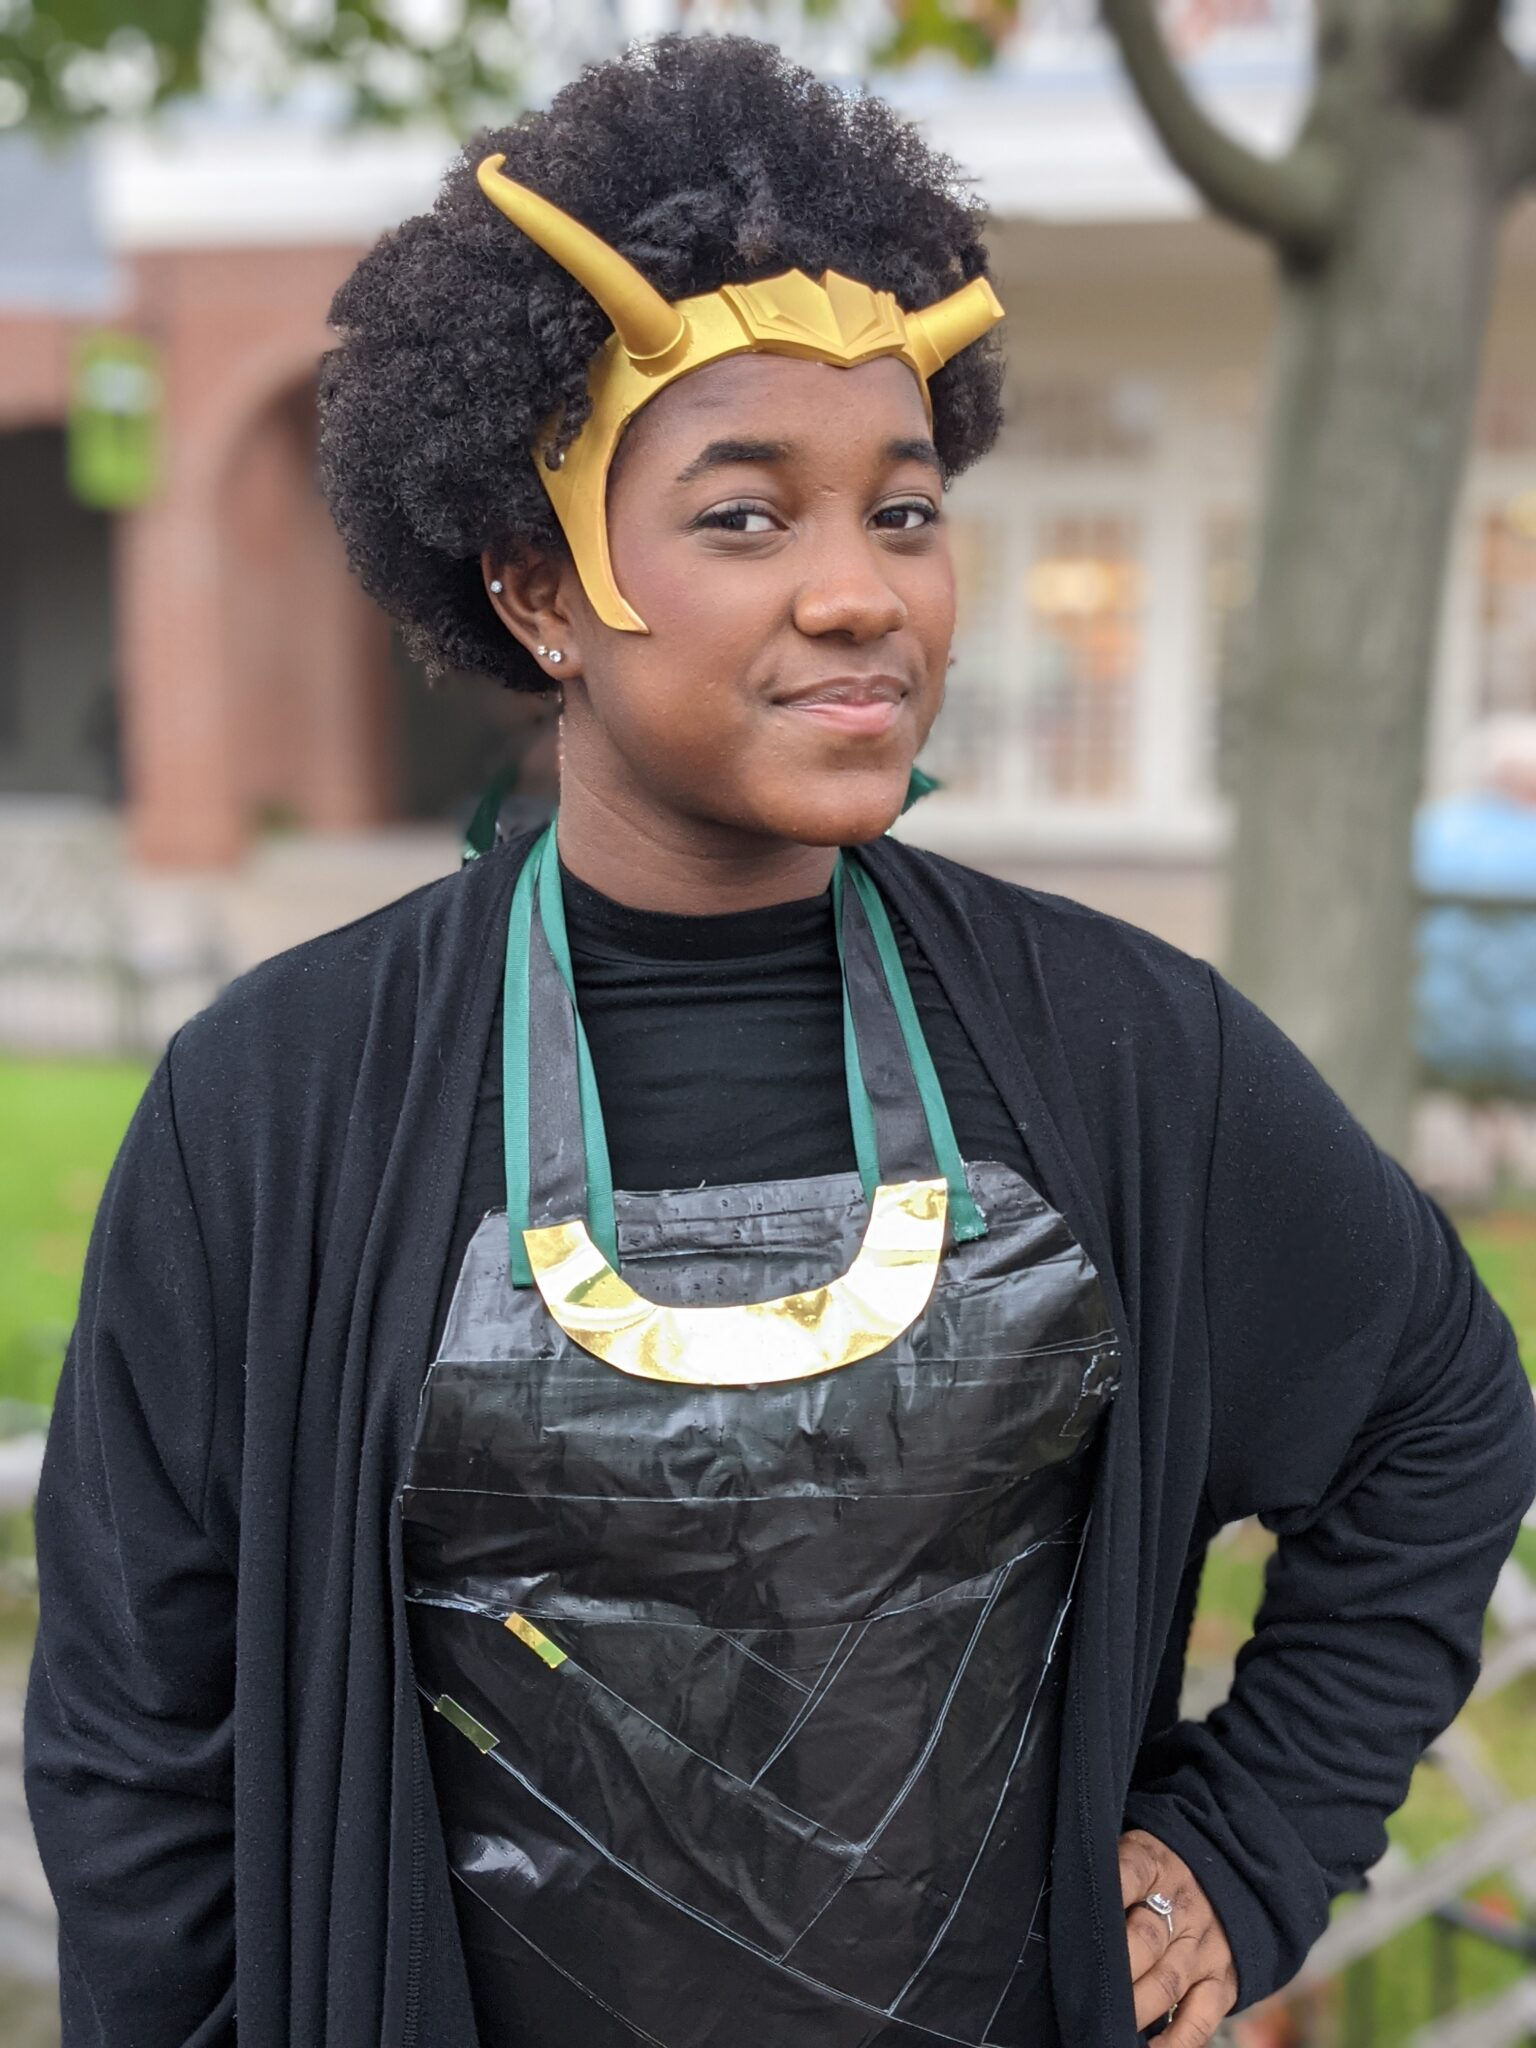 East DIY Marvel Themed Costumes for Halloween Using Regular Clothes All Things with Purpose Sarah Lemp 5